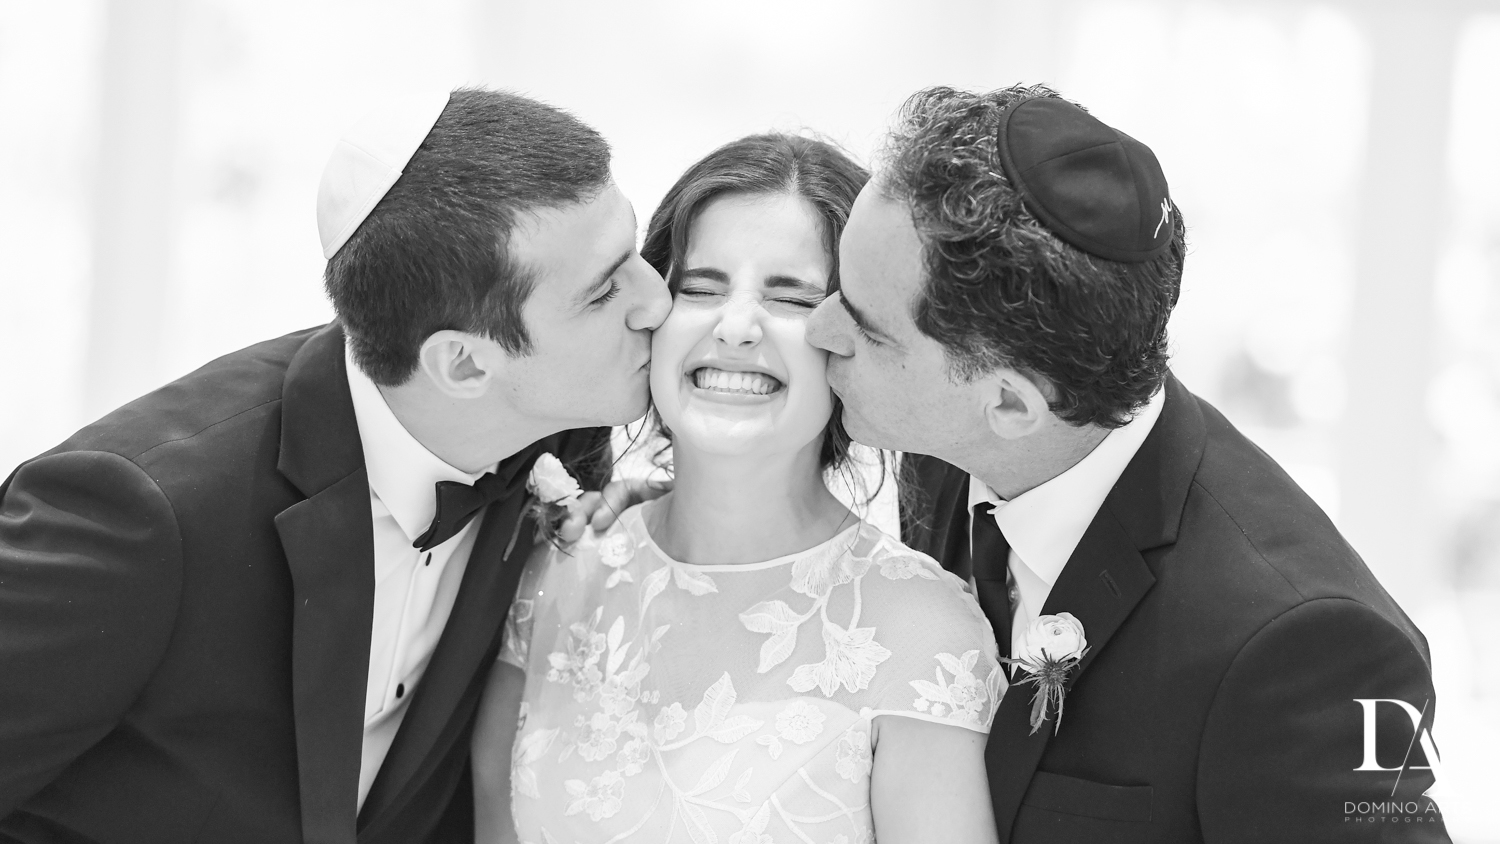 sibling love at Luxury Summer Wedding at The Colony Hotel Palm Beach by Domino Arts Photography